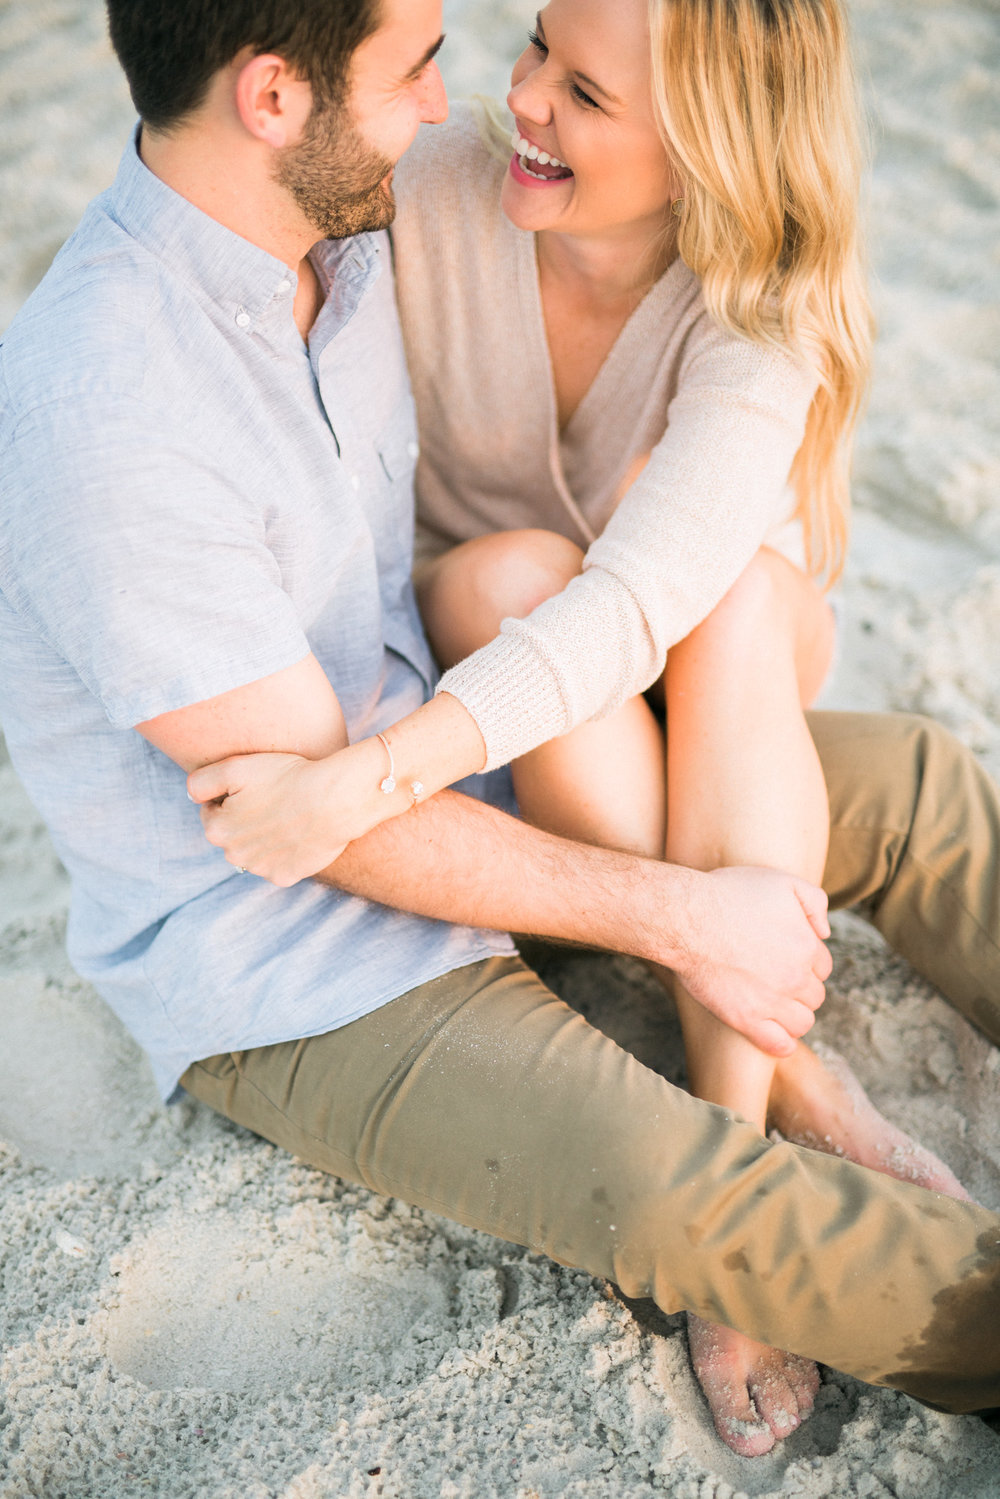 naples-florida-beach-engagement-hunter-ryan-photo-naples-weddings-03164.jpg